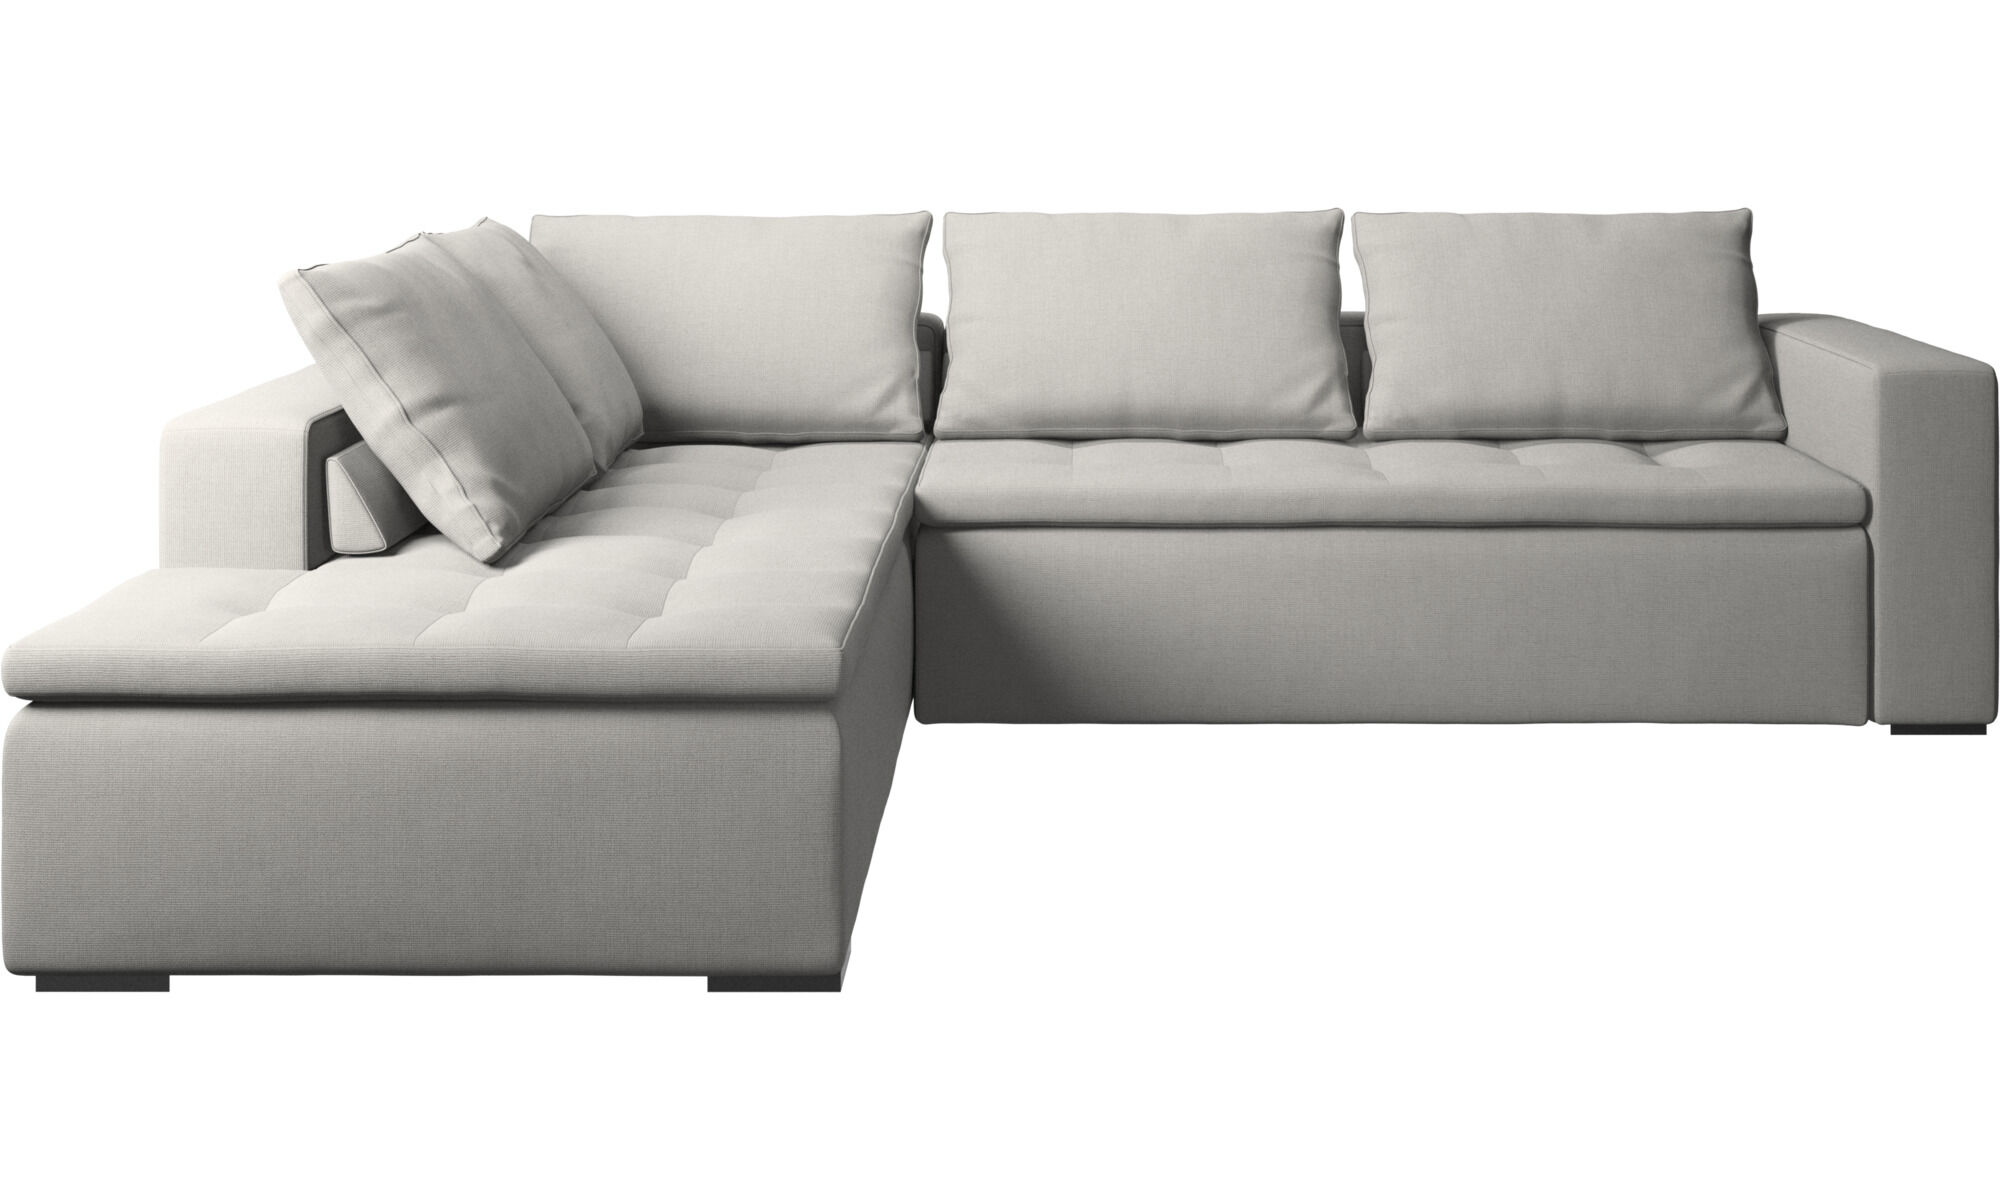 Bon Sofas With Open End   Mezzo Corner Sofa With Lounging Unit   Grey   Fabric  ...